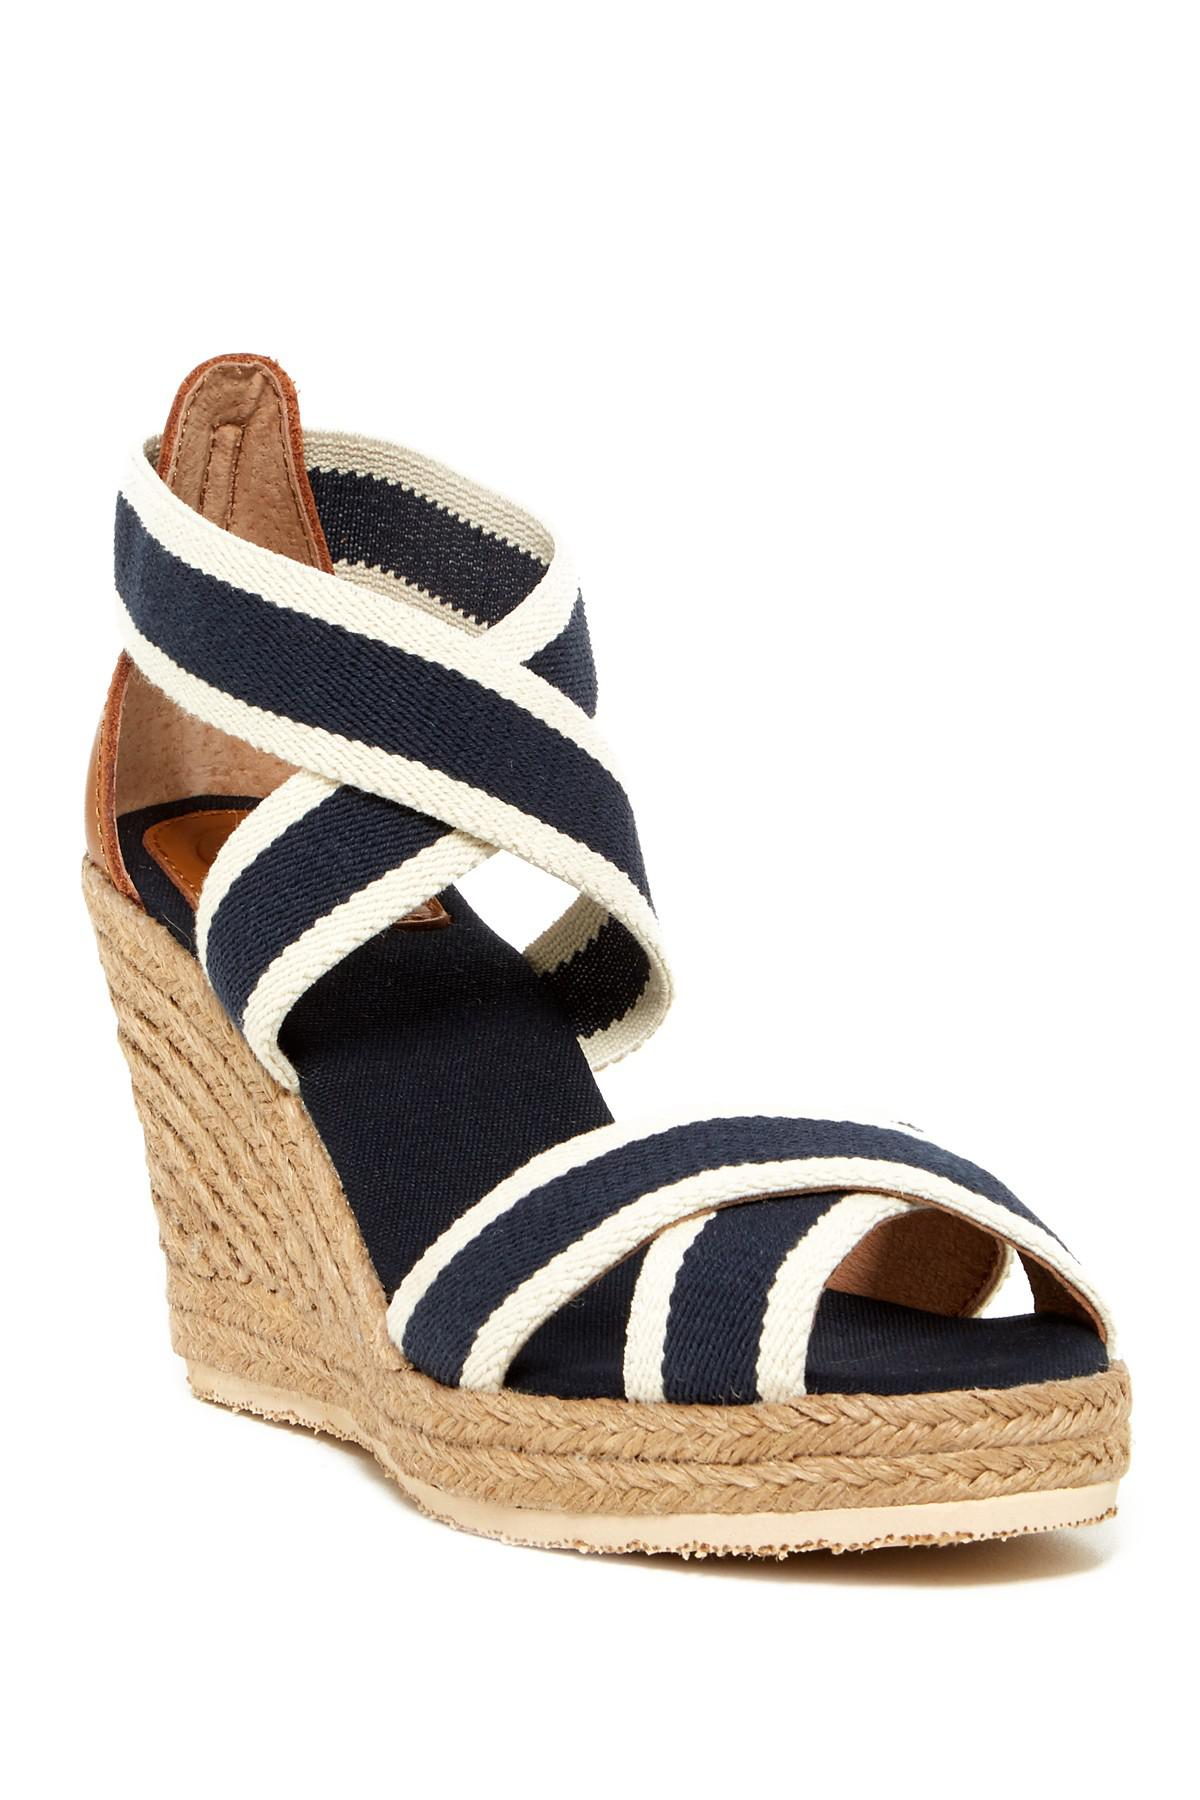 561957f2781 Lyst - Joy & Mario Lola Espadrille Wedge Sandal in Blue